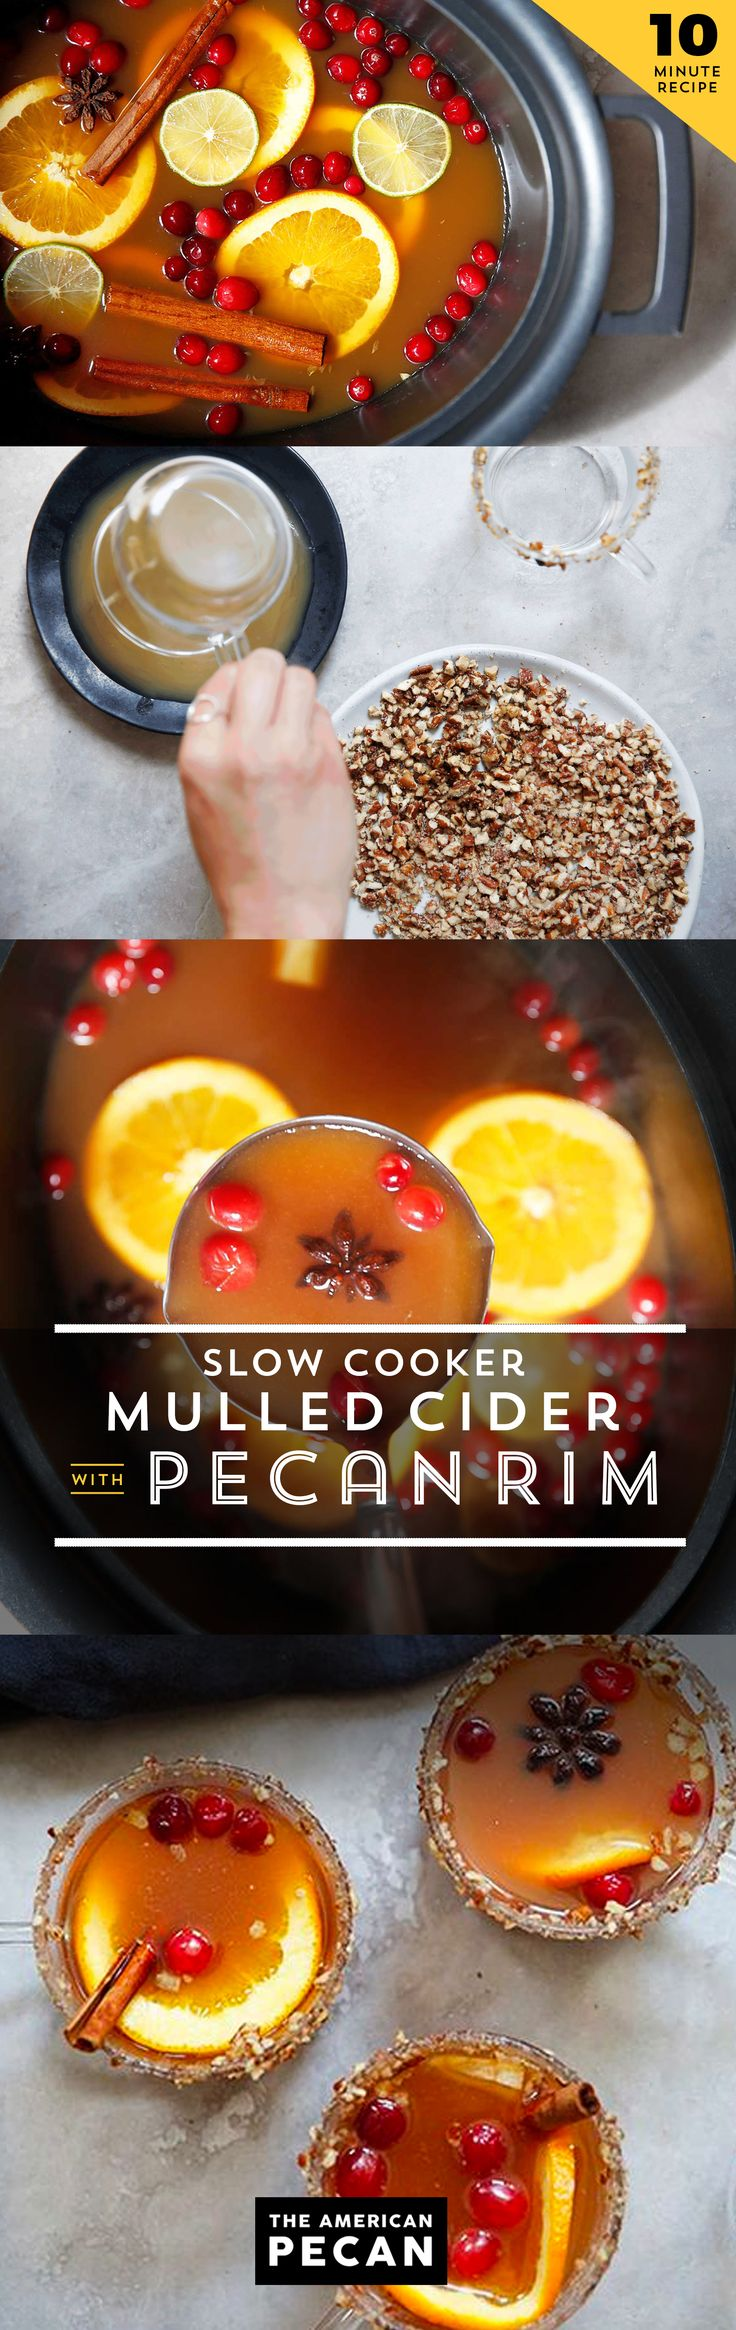 Set it on low and let it simmer �til happy hour. This slow cooker pecan mulled cider is stress-free and perfect for chilly winter evenings.